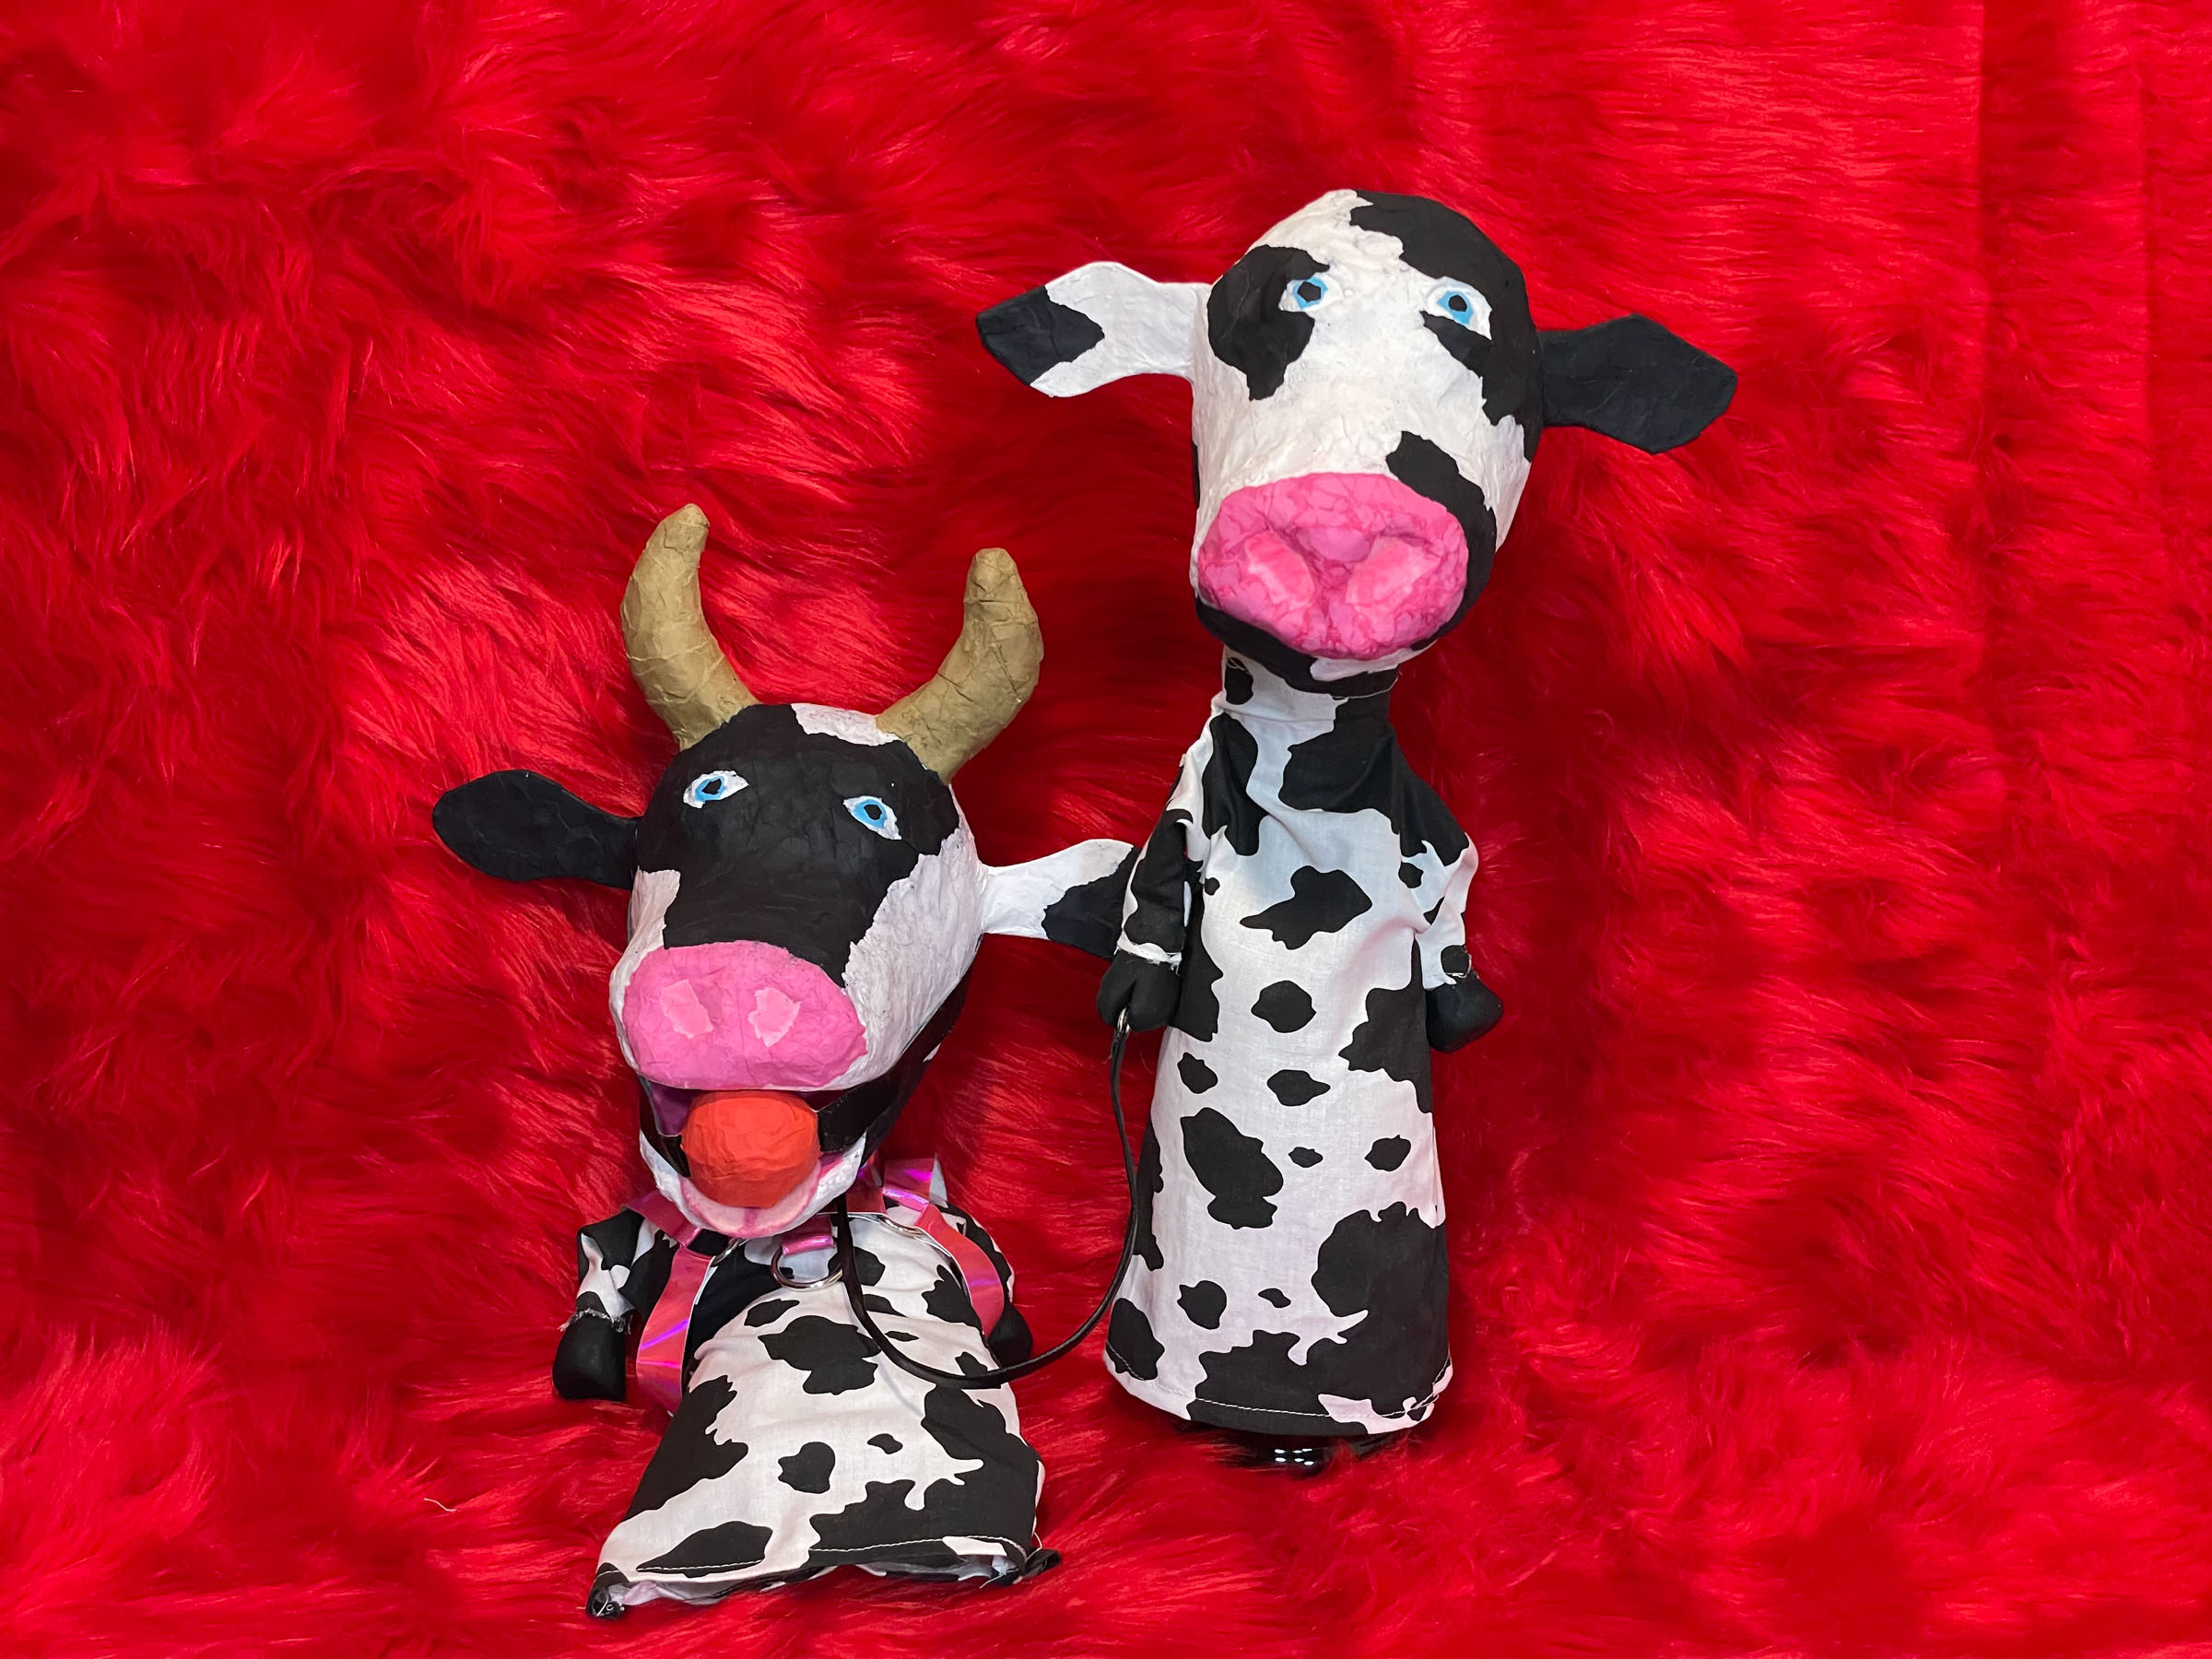 Walk the Cow - Dom and Sub Cow Puppets